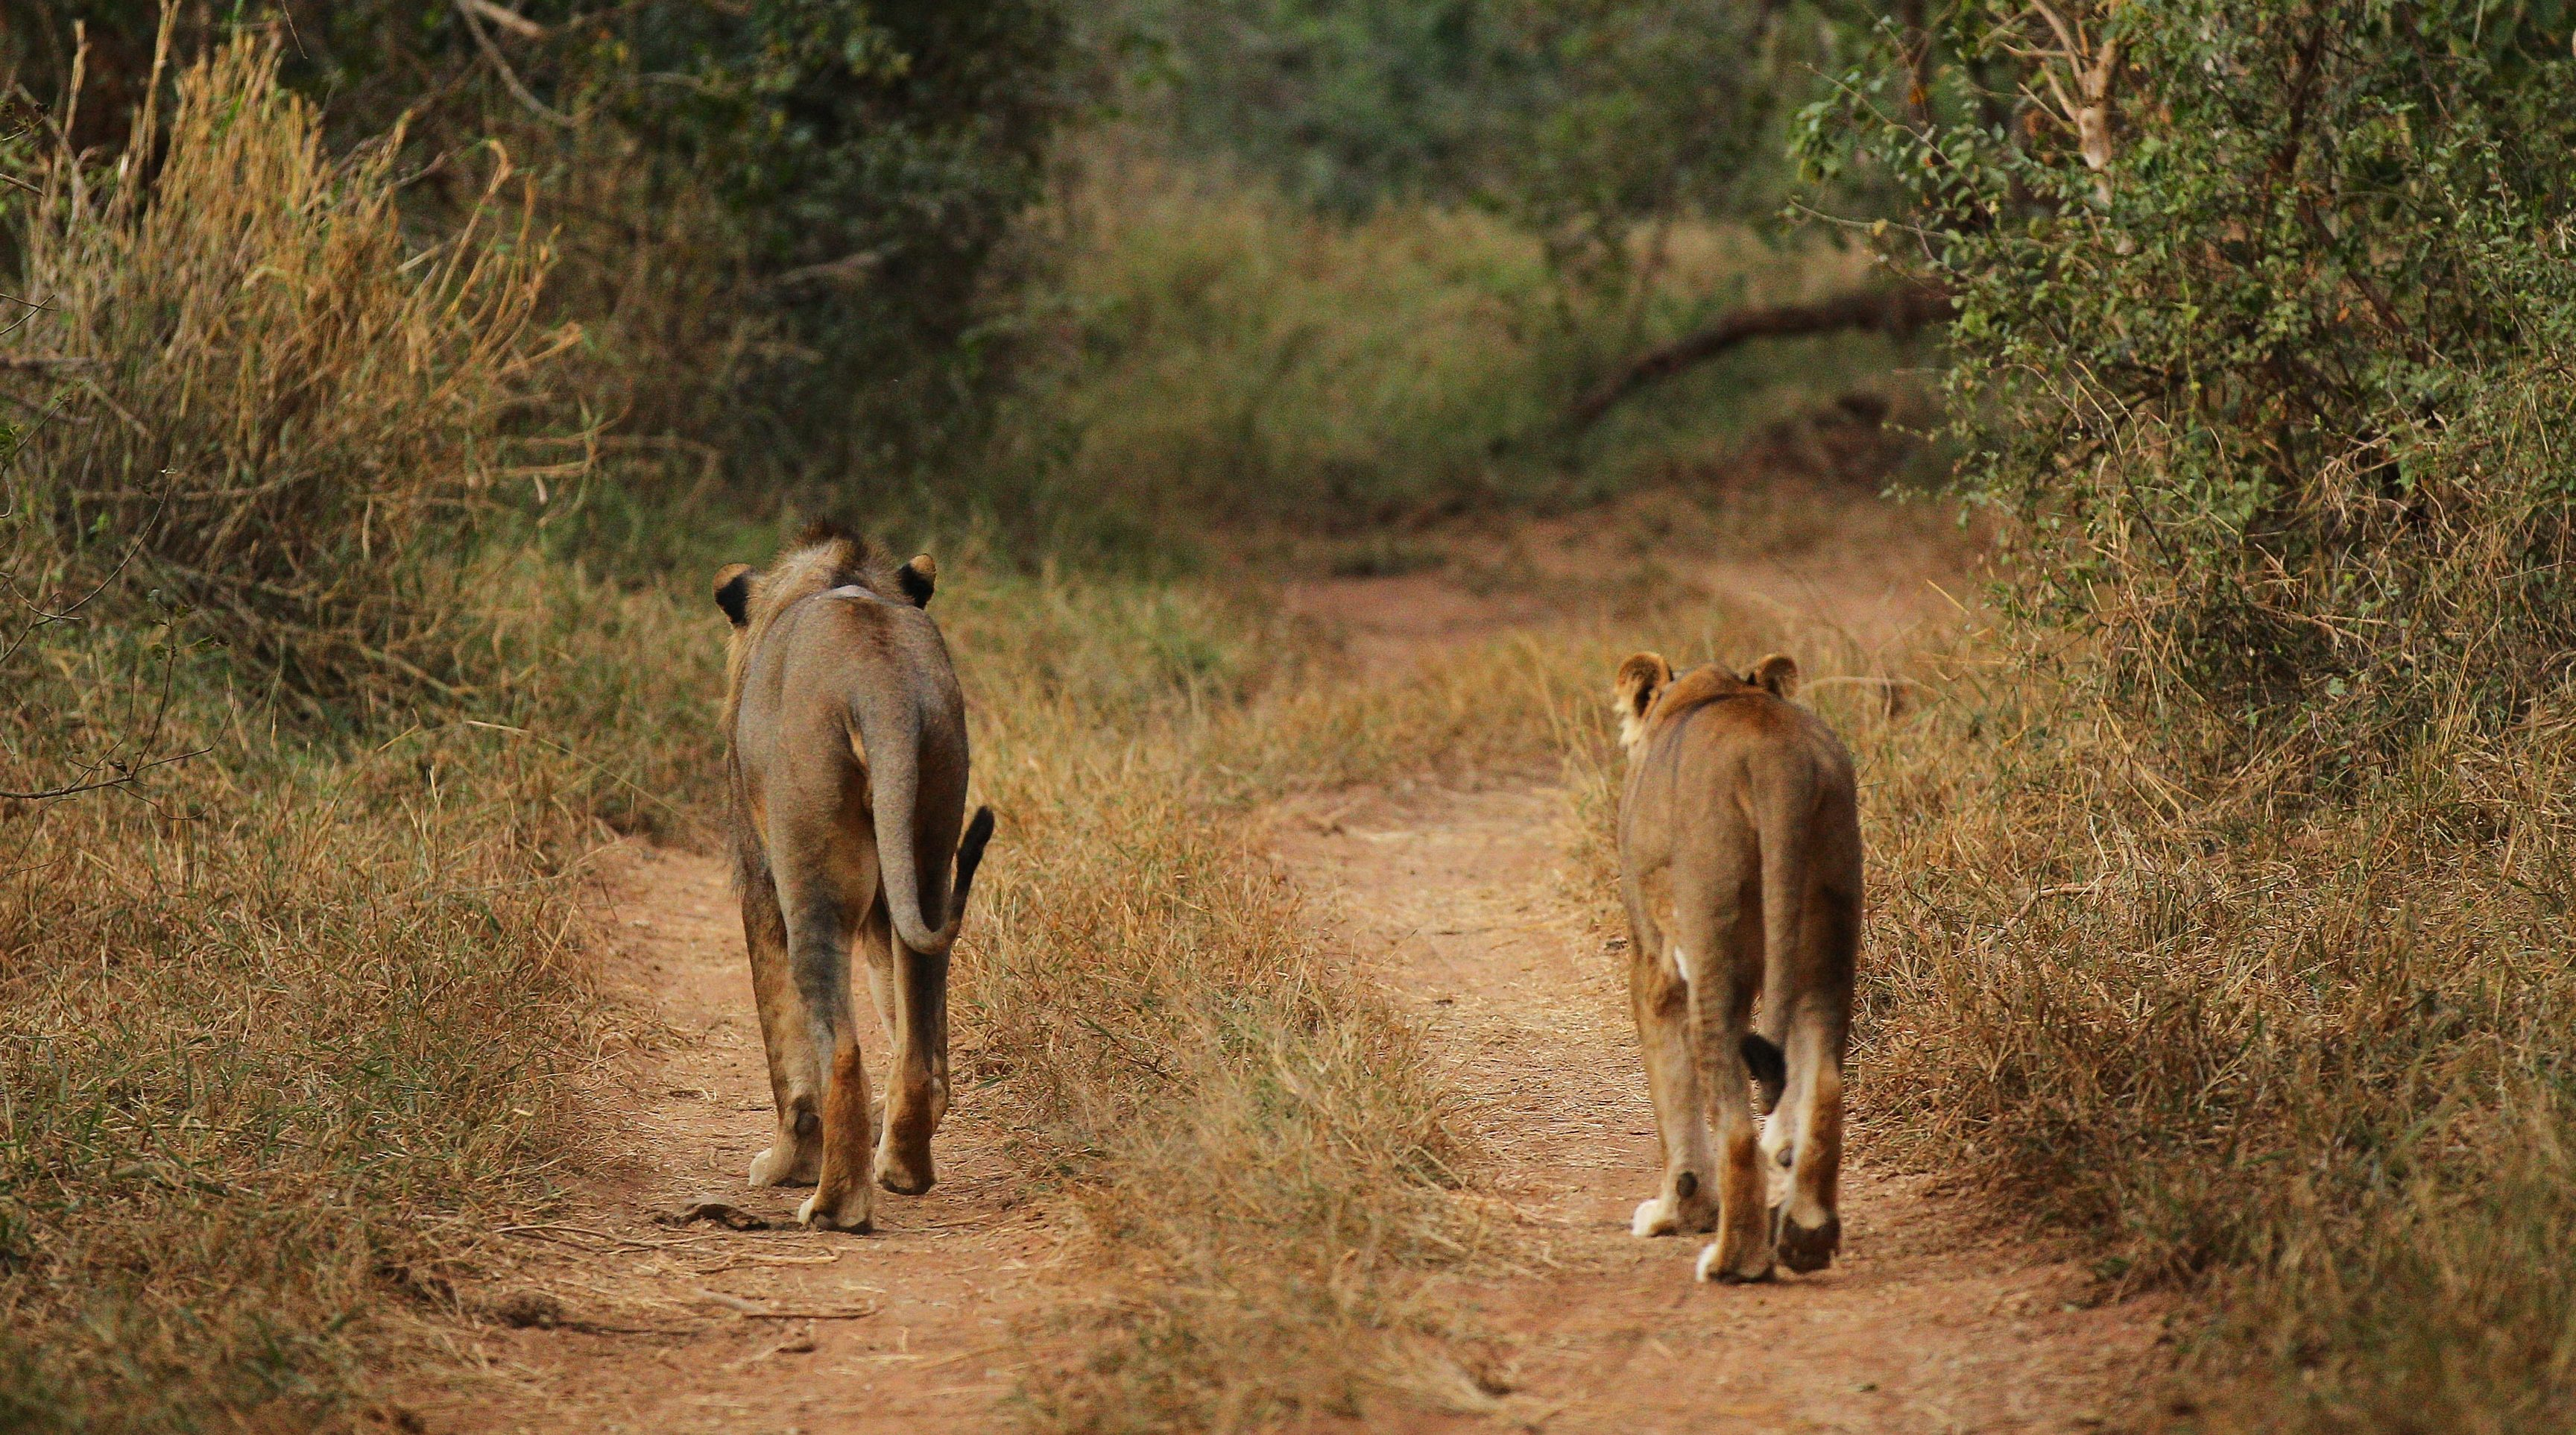 Suspected Poacher Eaten By Lions In South Africa | 90.1 FM WABE